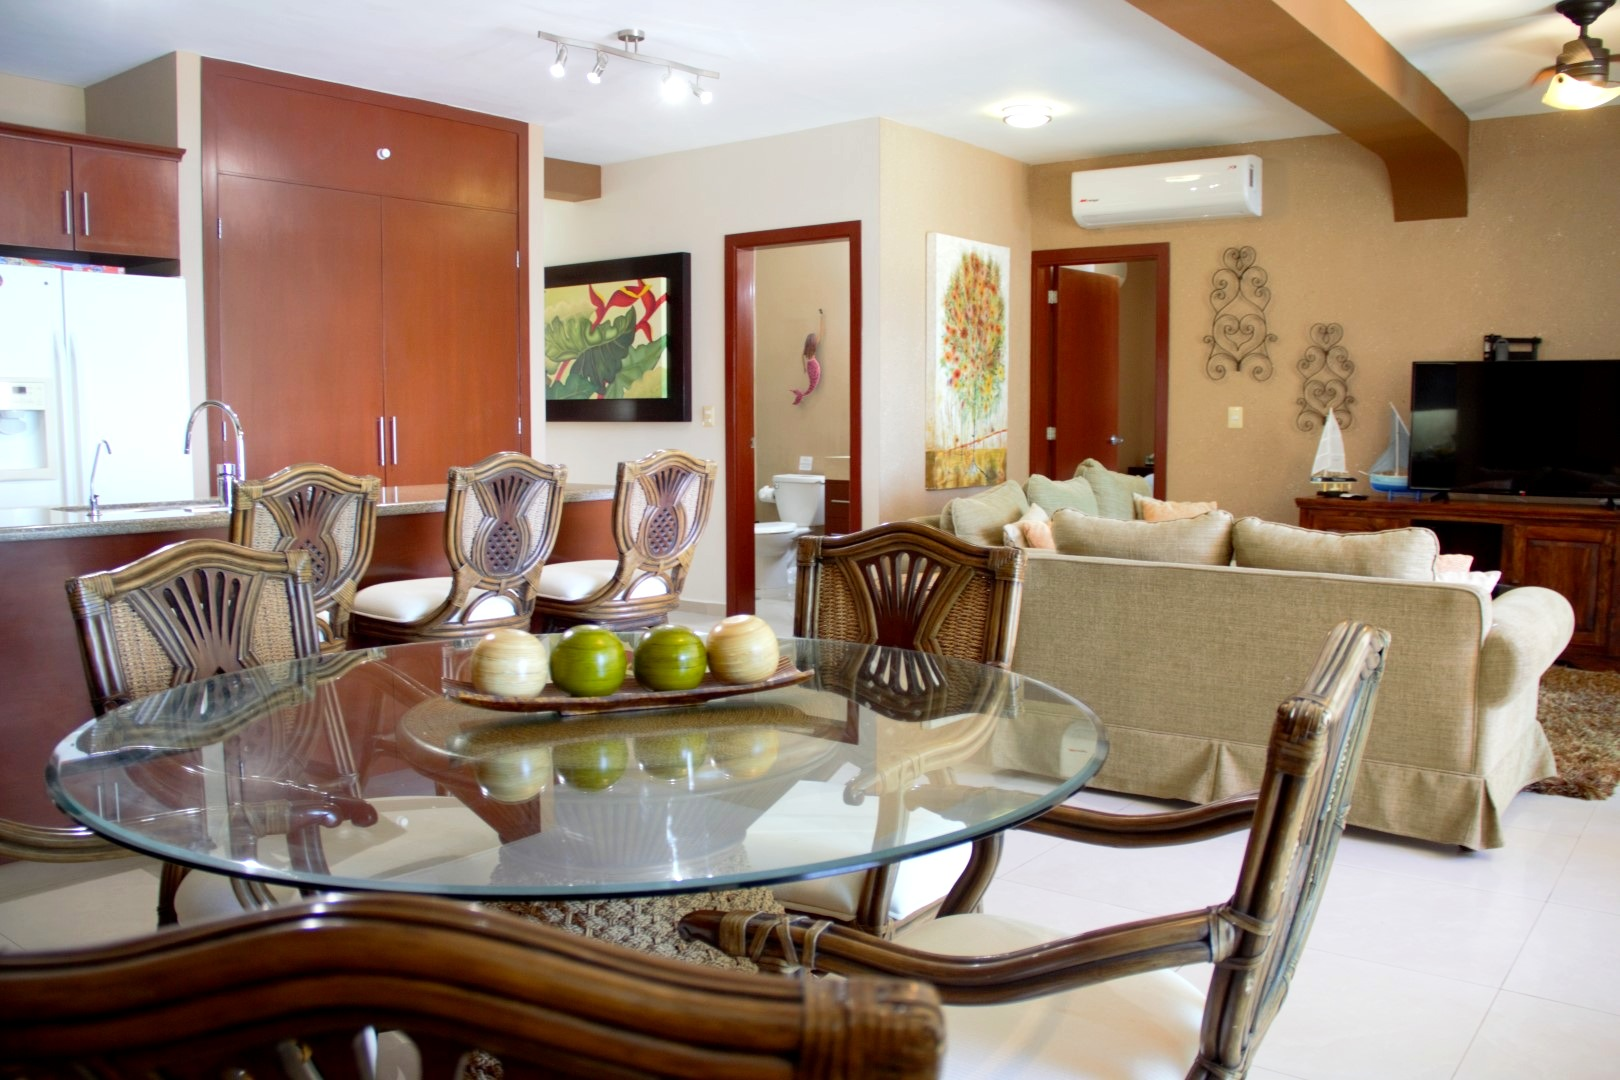 Dining, living and kitchen areas.